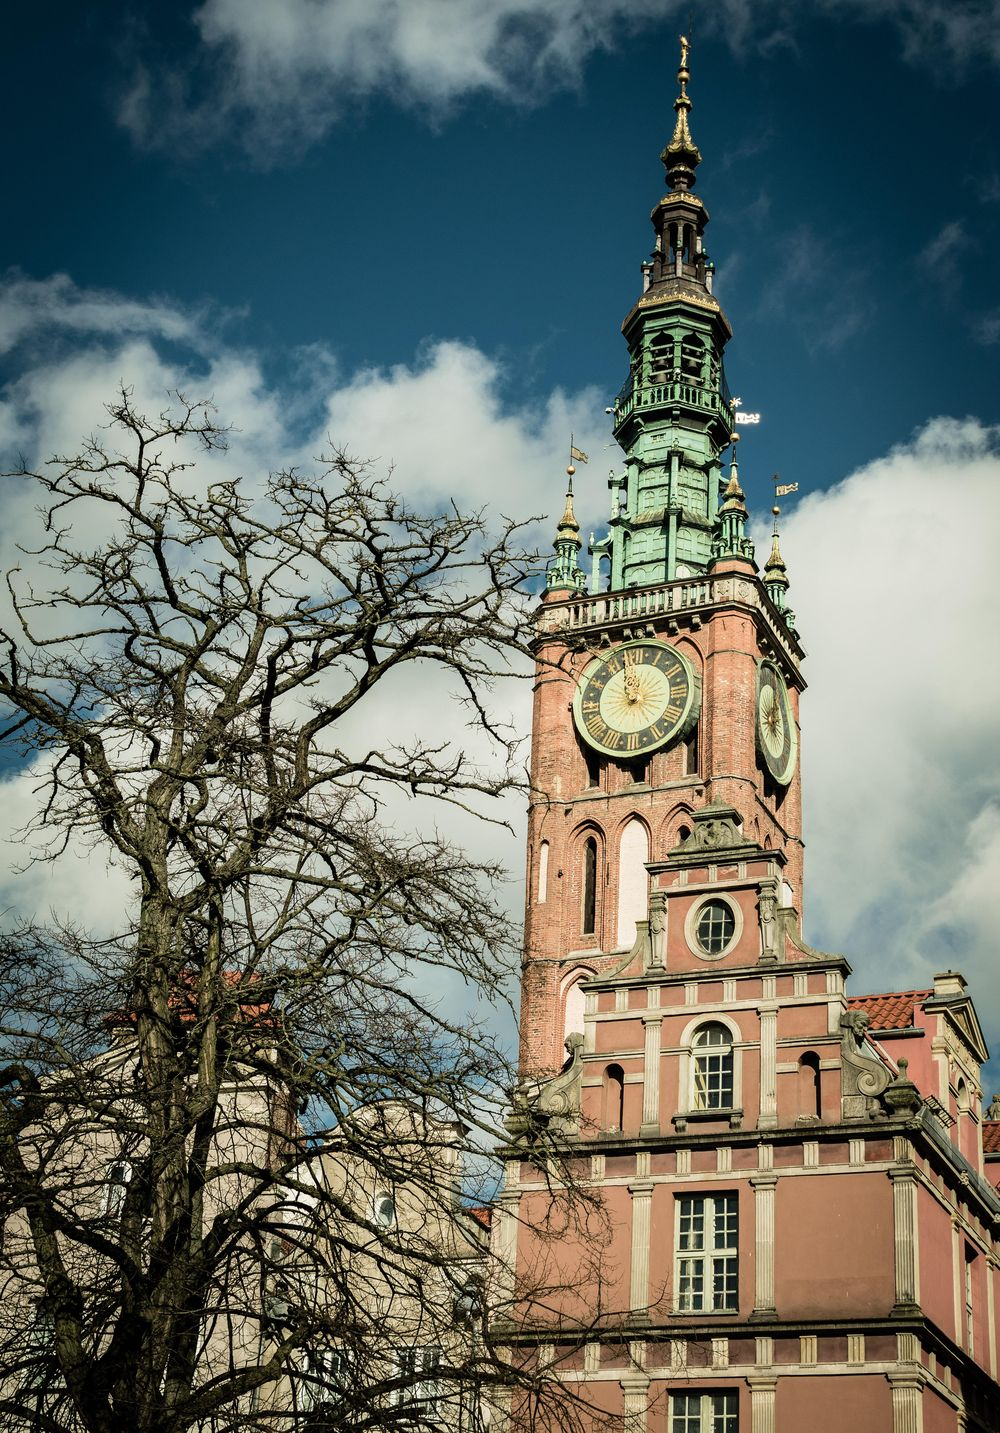 Old Town Hall - image 4 - student project